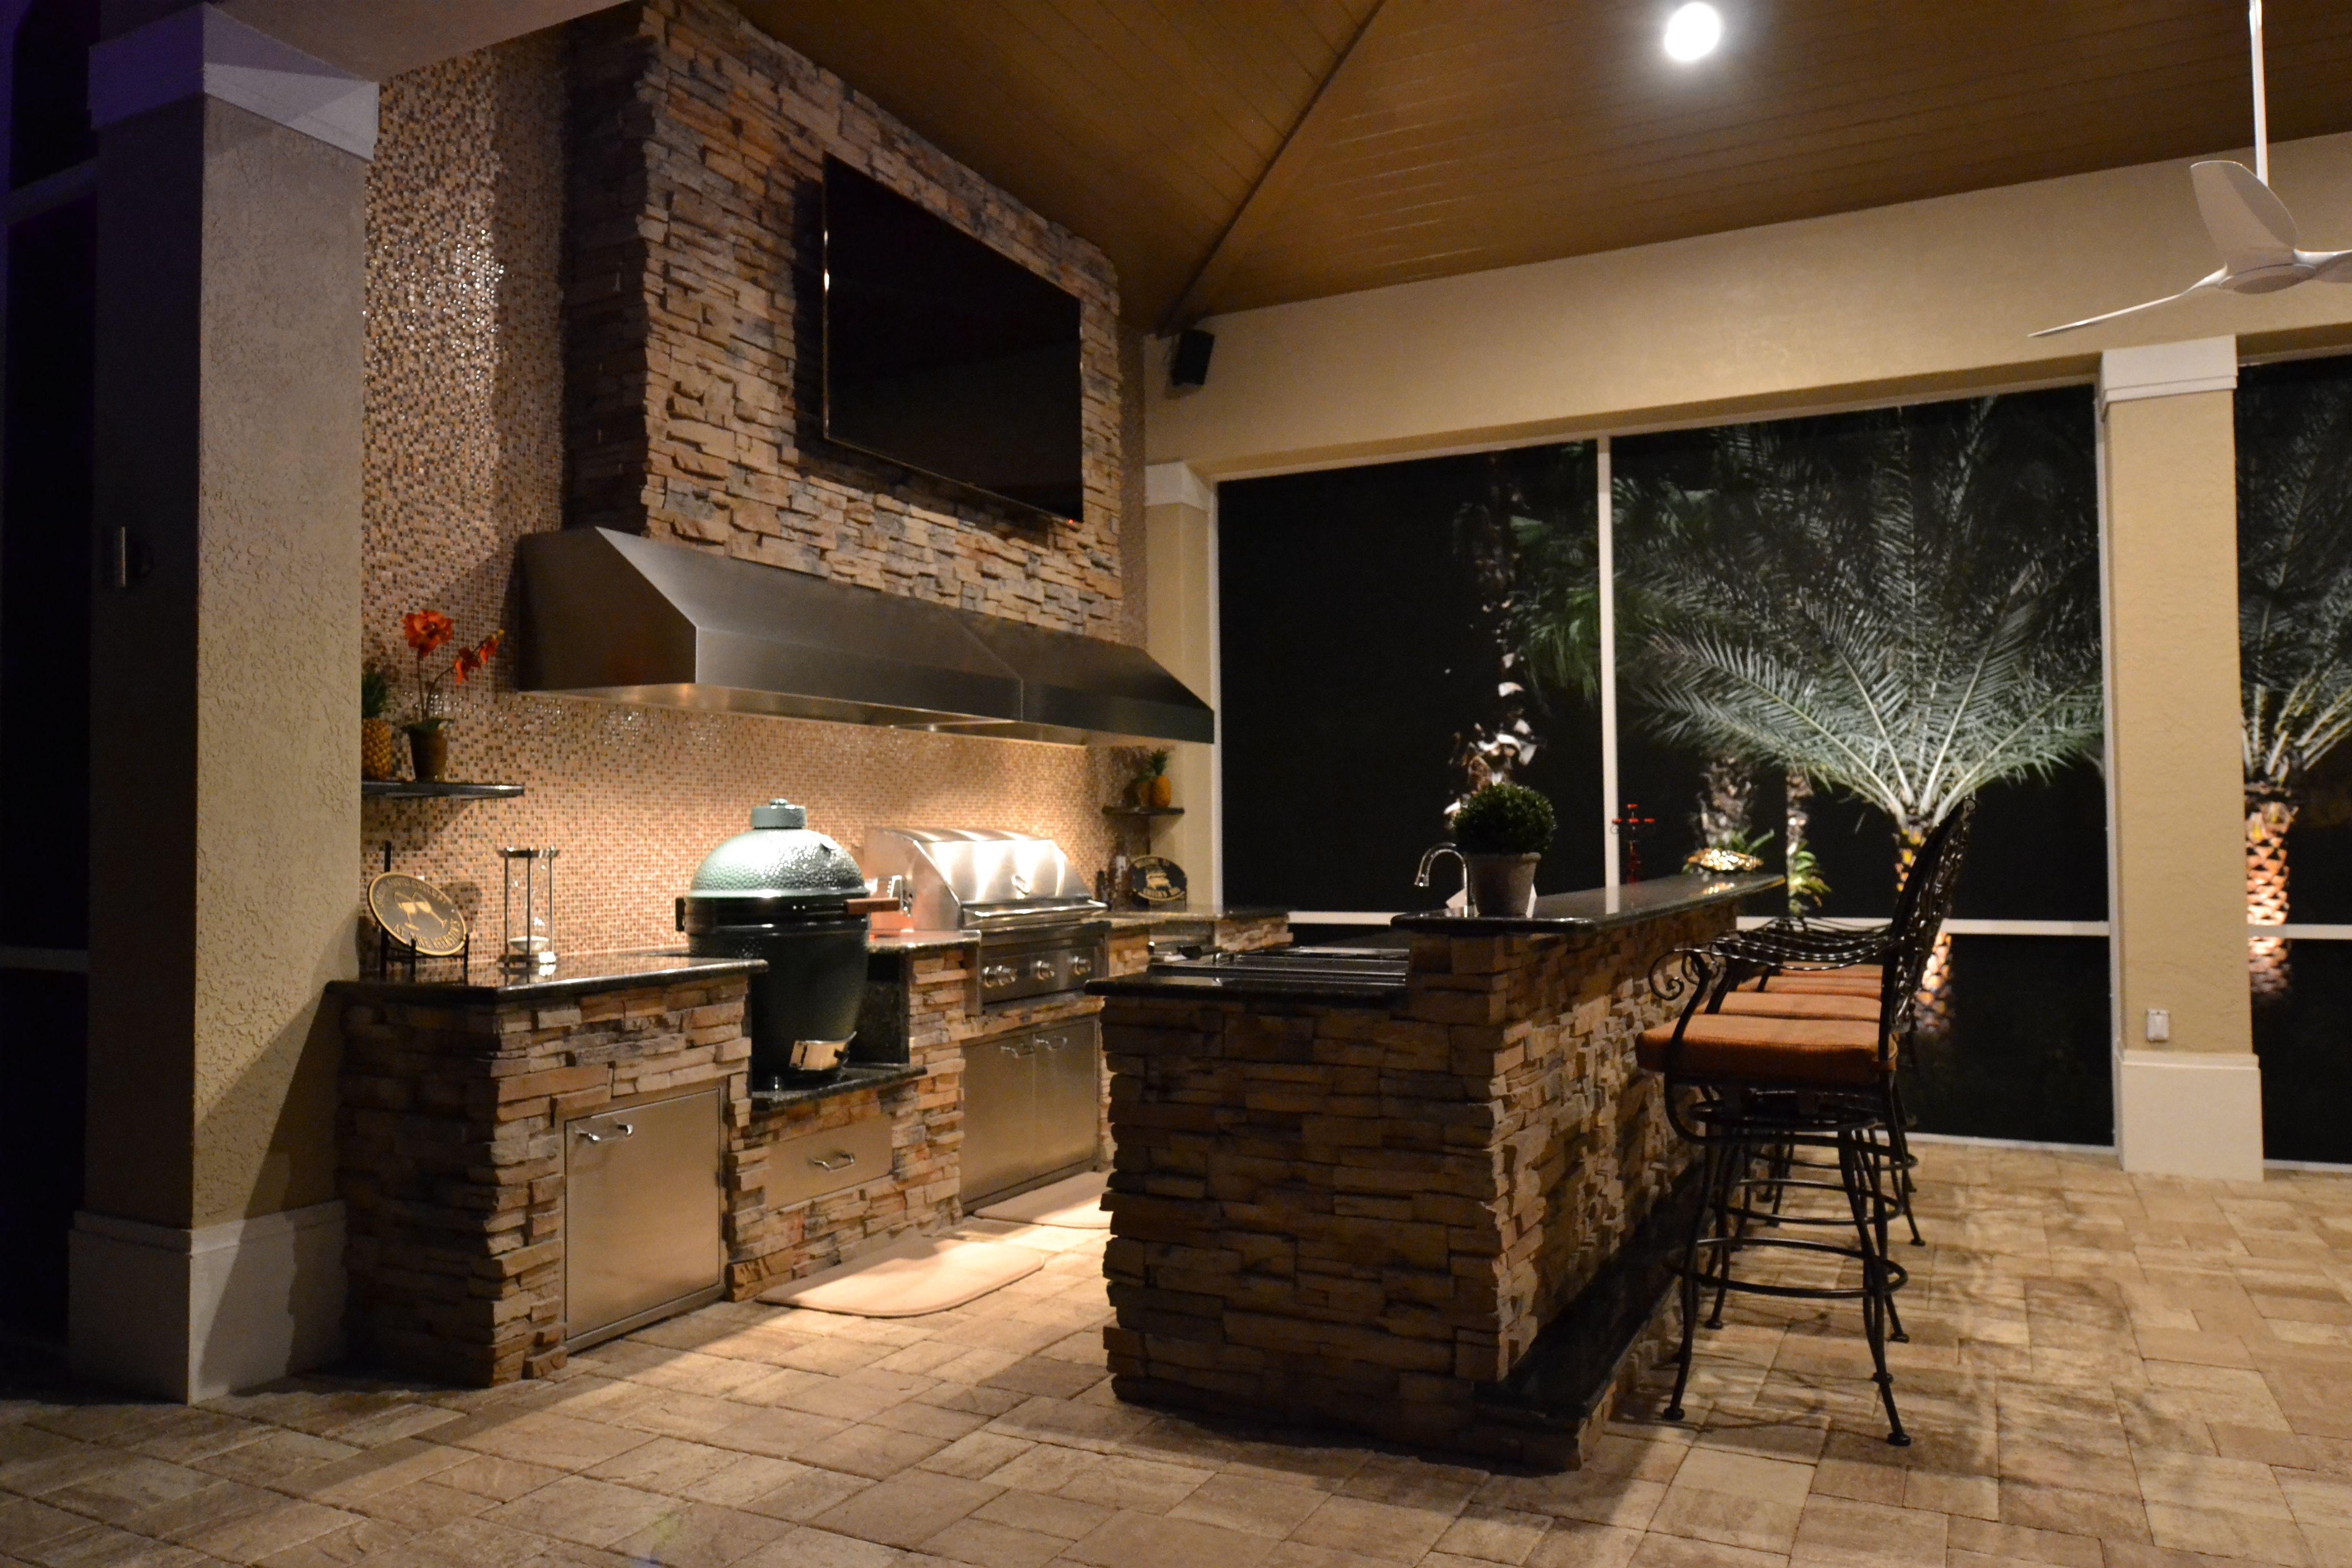 Outdoor Kitchen And Bar Outdoor Living Design Outdoor Kitchen Outdoor Kitchen Design